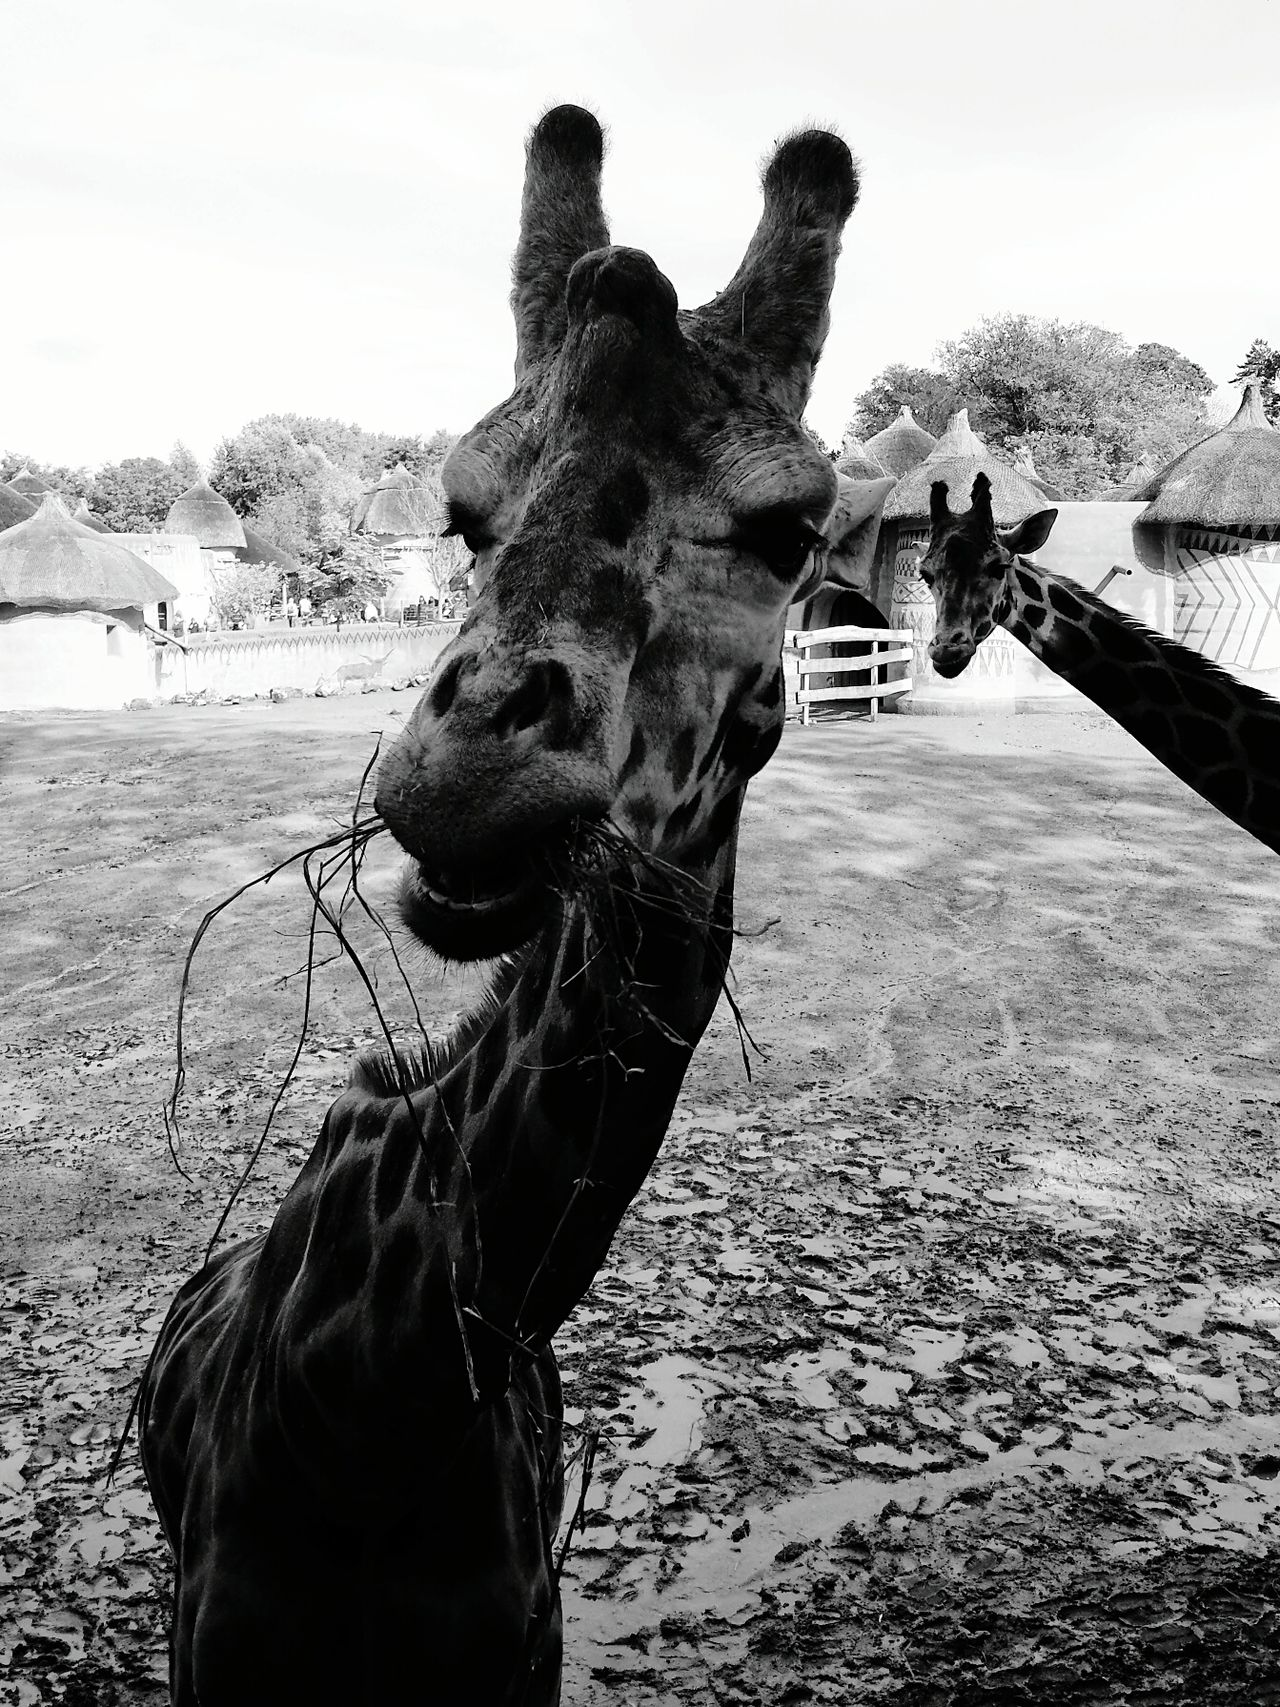 Sa Bkack&withe Portrait Animal Giraffe Africa Savana Funny Faces Funny Zoo GALAXY S4 Mobilephotography